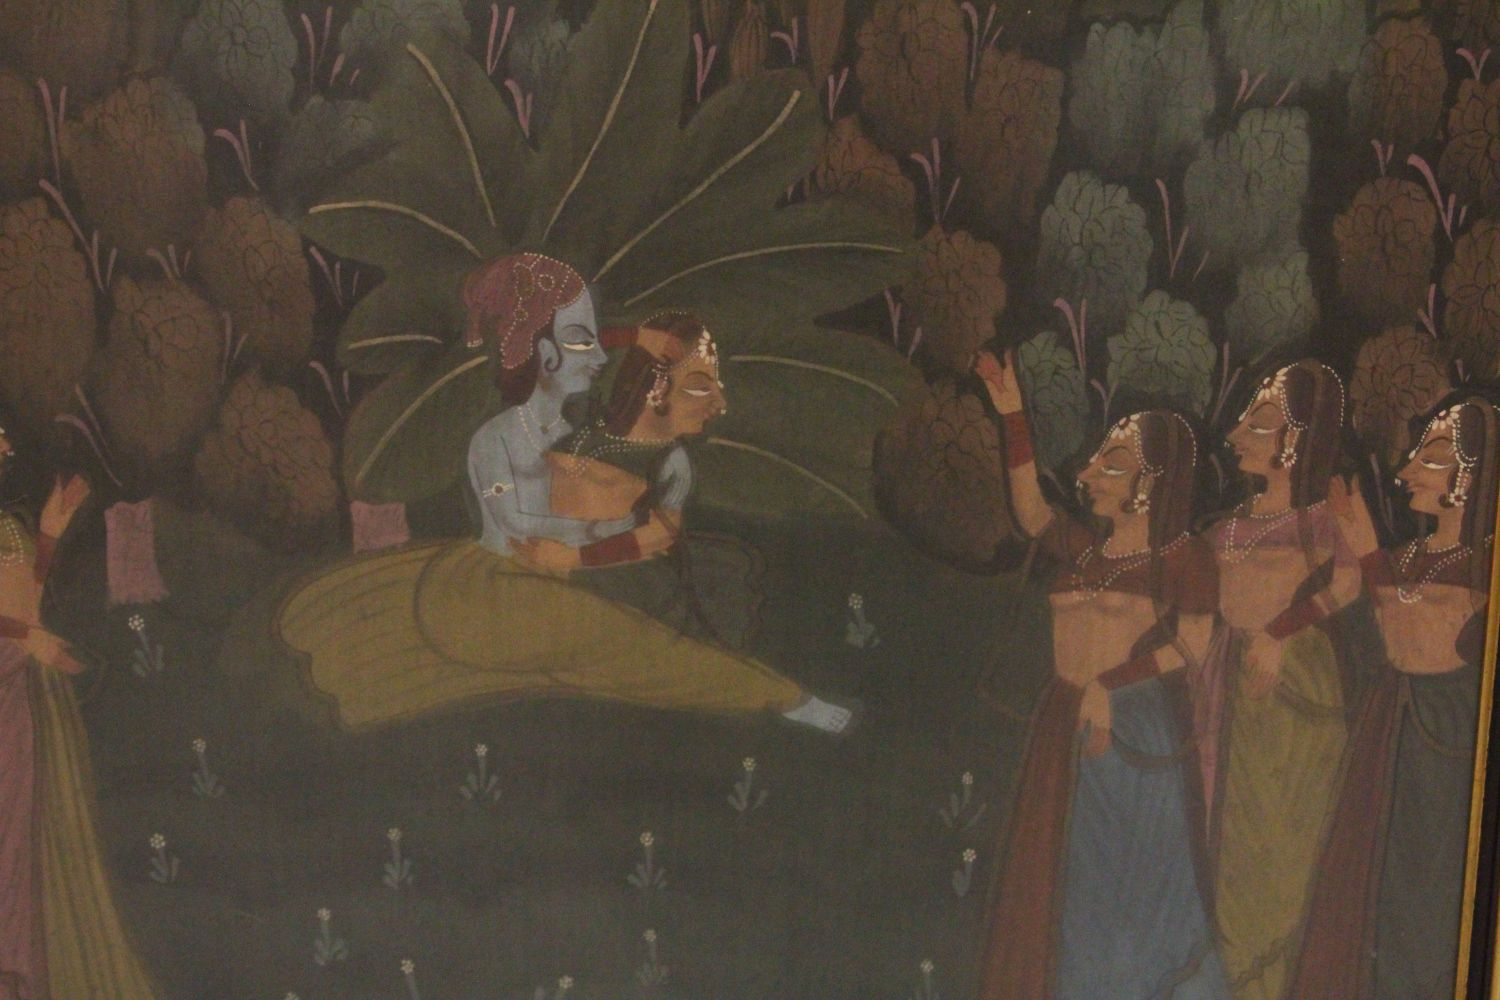 Lot 45 - A 19TH-20TH CENTURY FRAMED INDIAN PAINTING ON TEXTILE depicting a blue skin god dancing with a